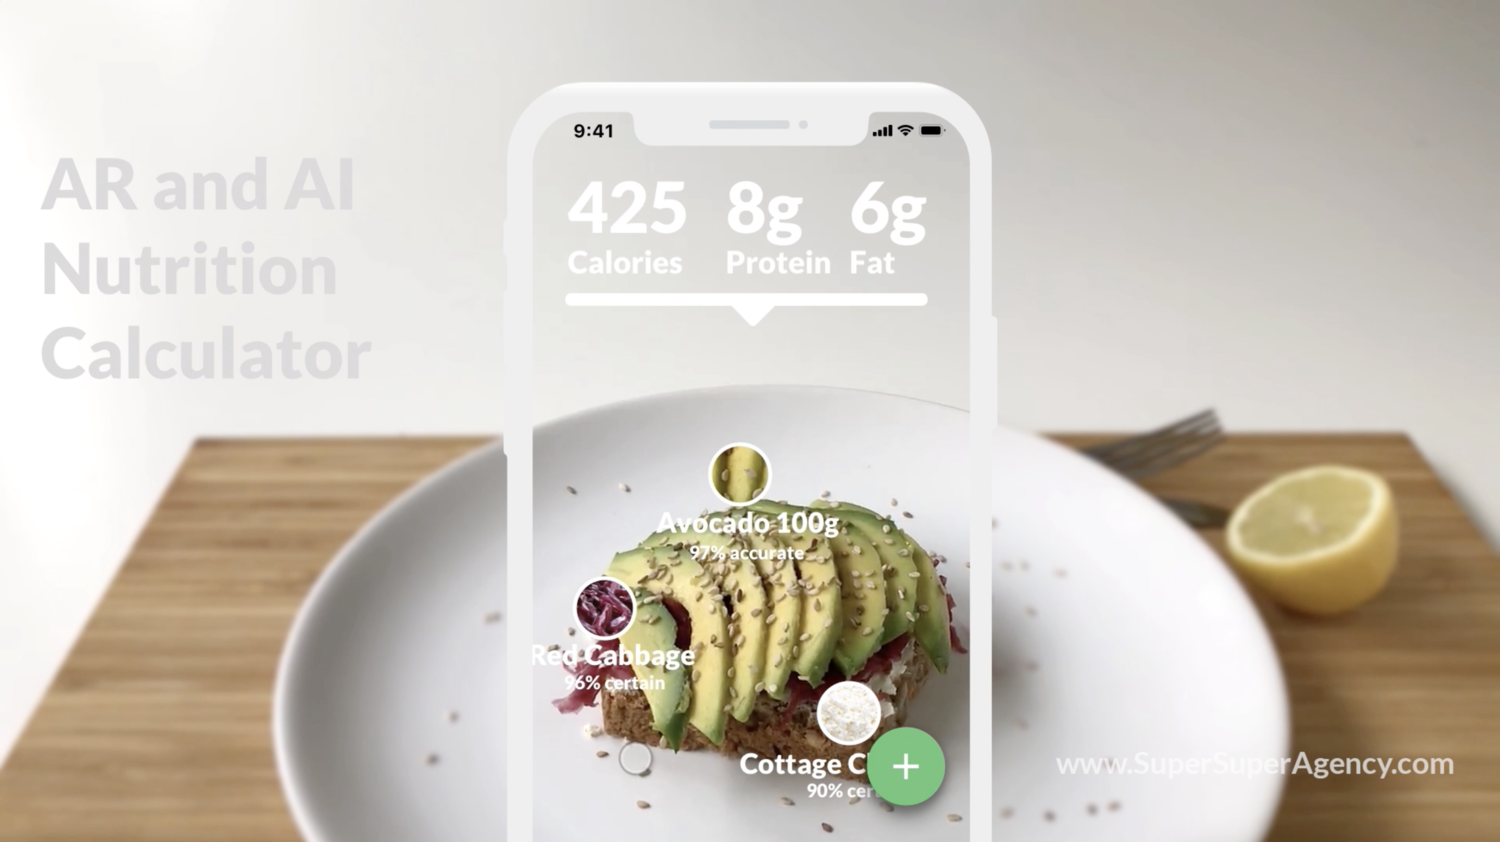 After it has done recognizing your meal, the app calculates your calories, protein, or other things your decided you to keep track and shows you a calculation, preview of your meal and information.